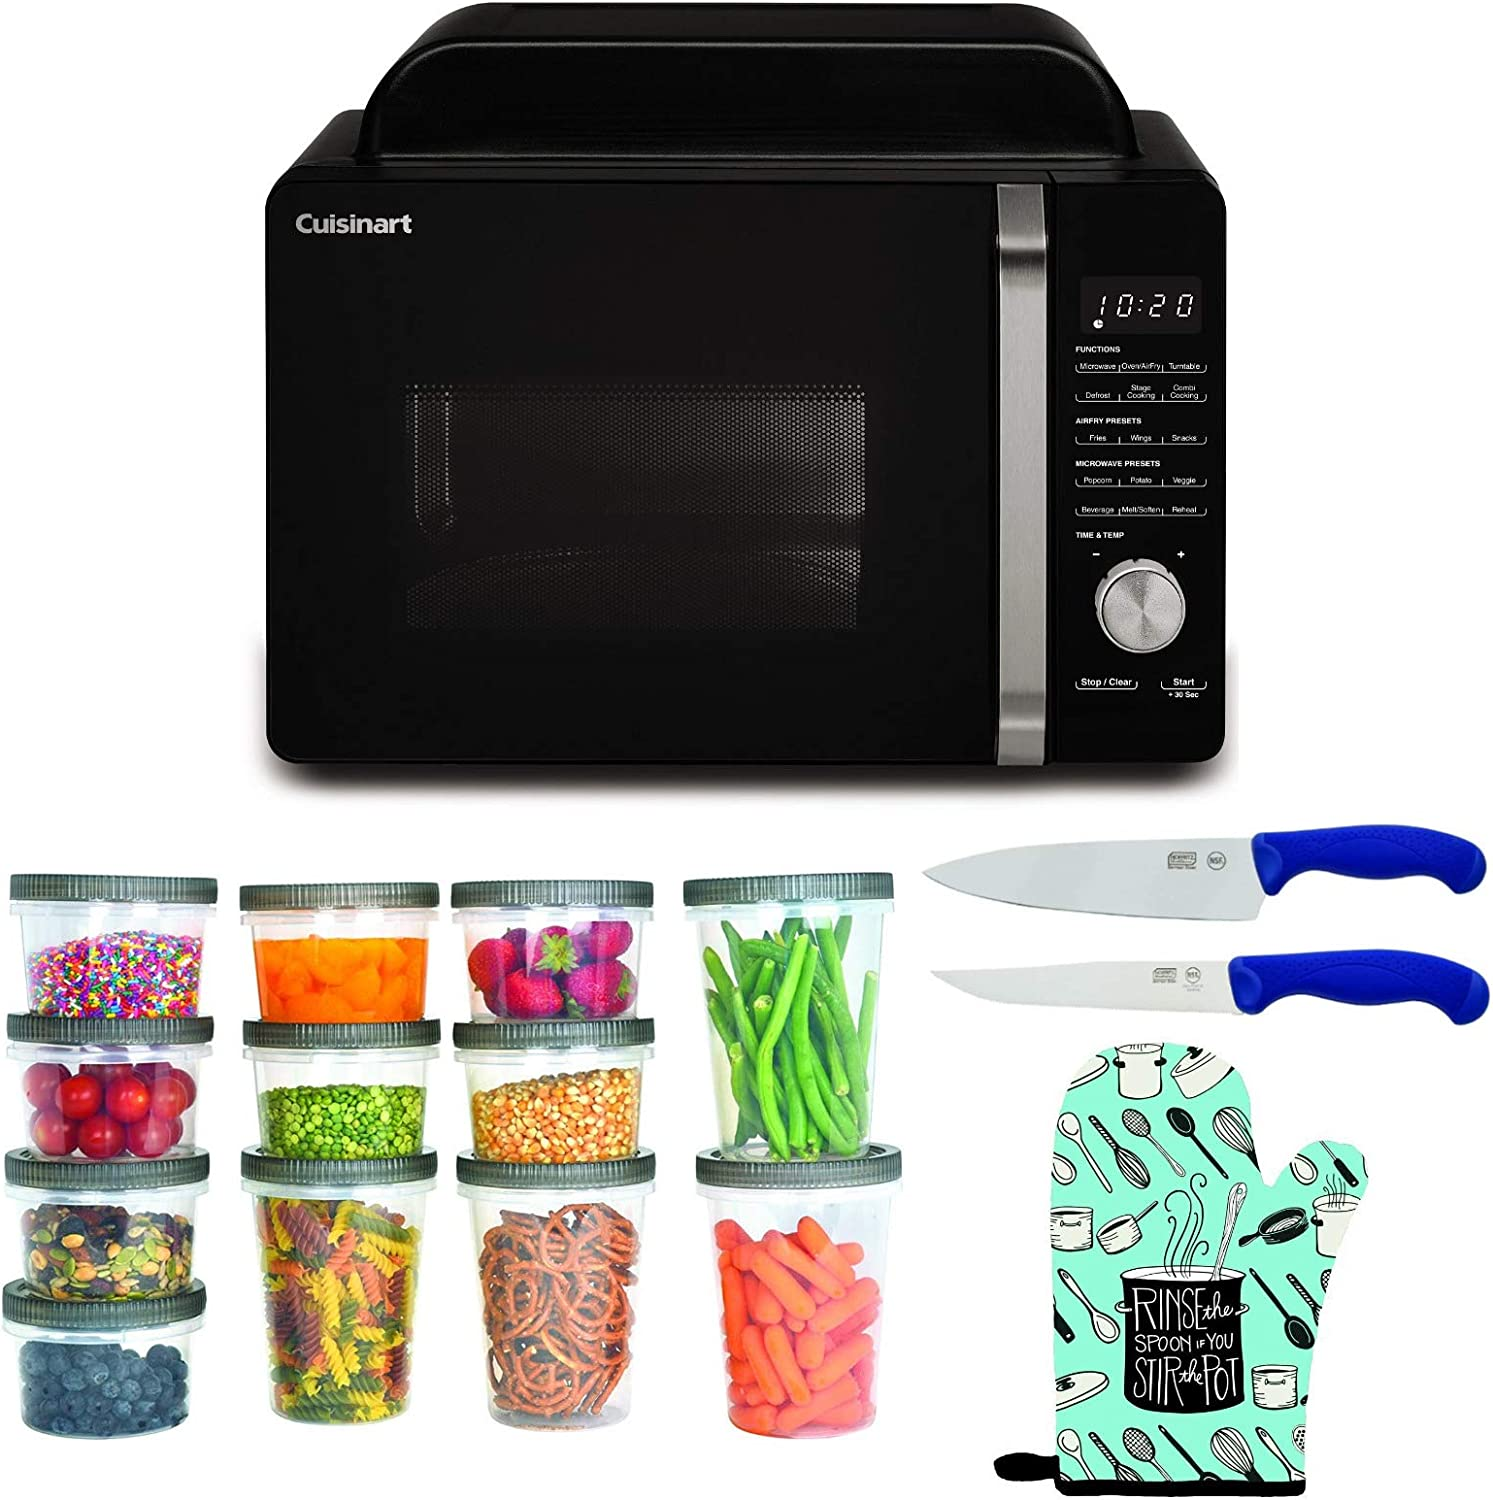 Cuisinart AMW-60 3-in-1 Microwave AirFryer Convection Oven Bundle with Storage Containers, Oven Mitt, Chef Knife, and Utility Knife (5 Items)